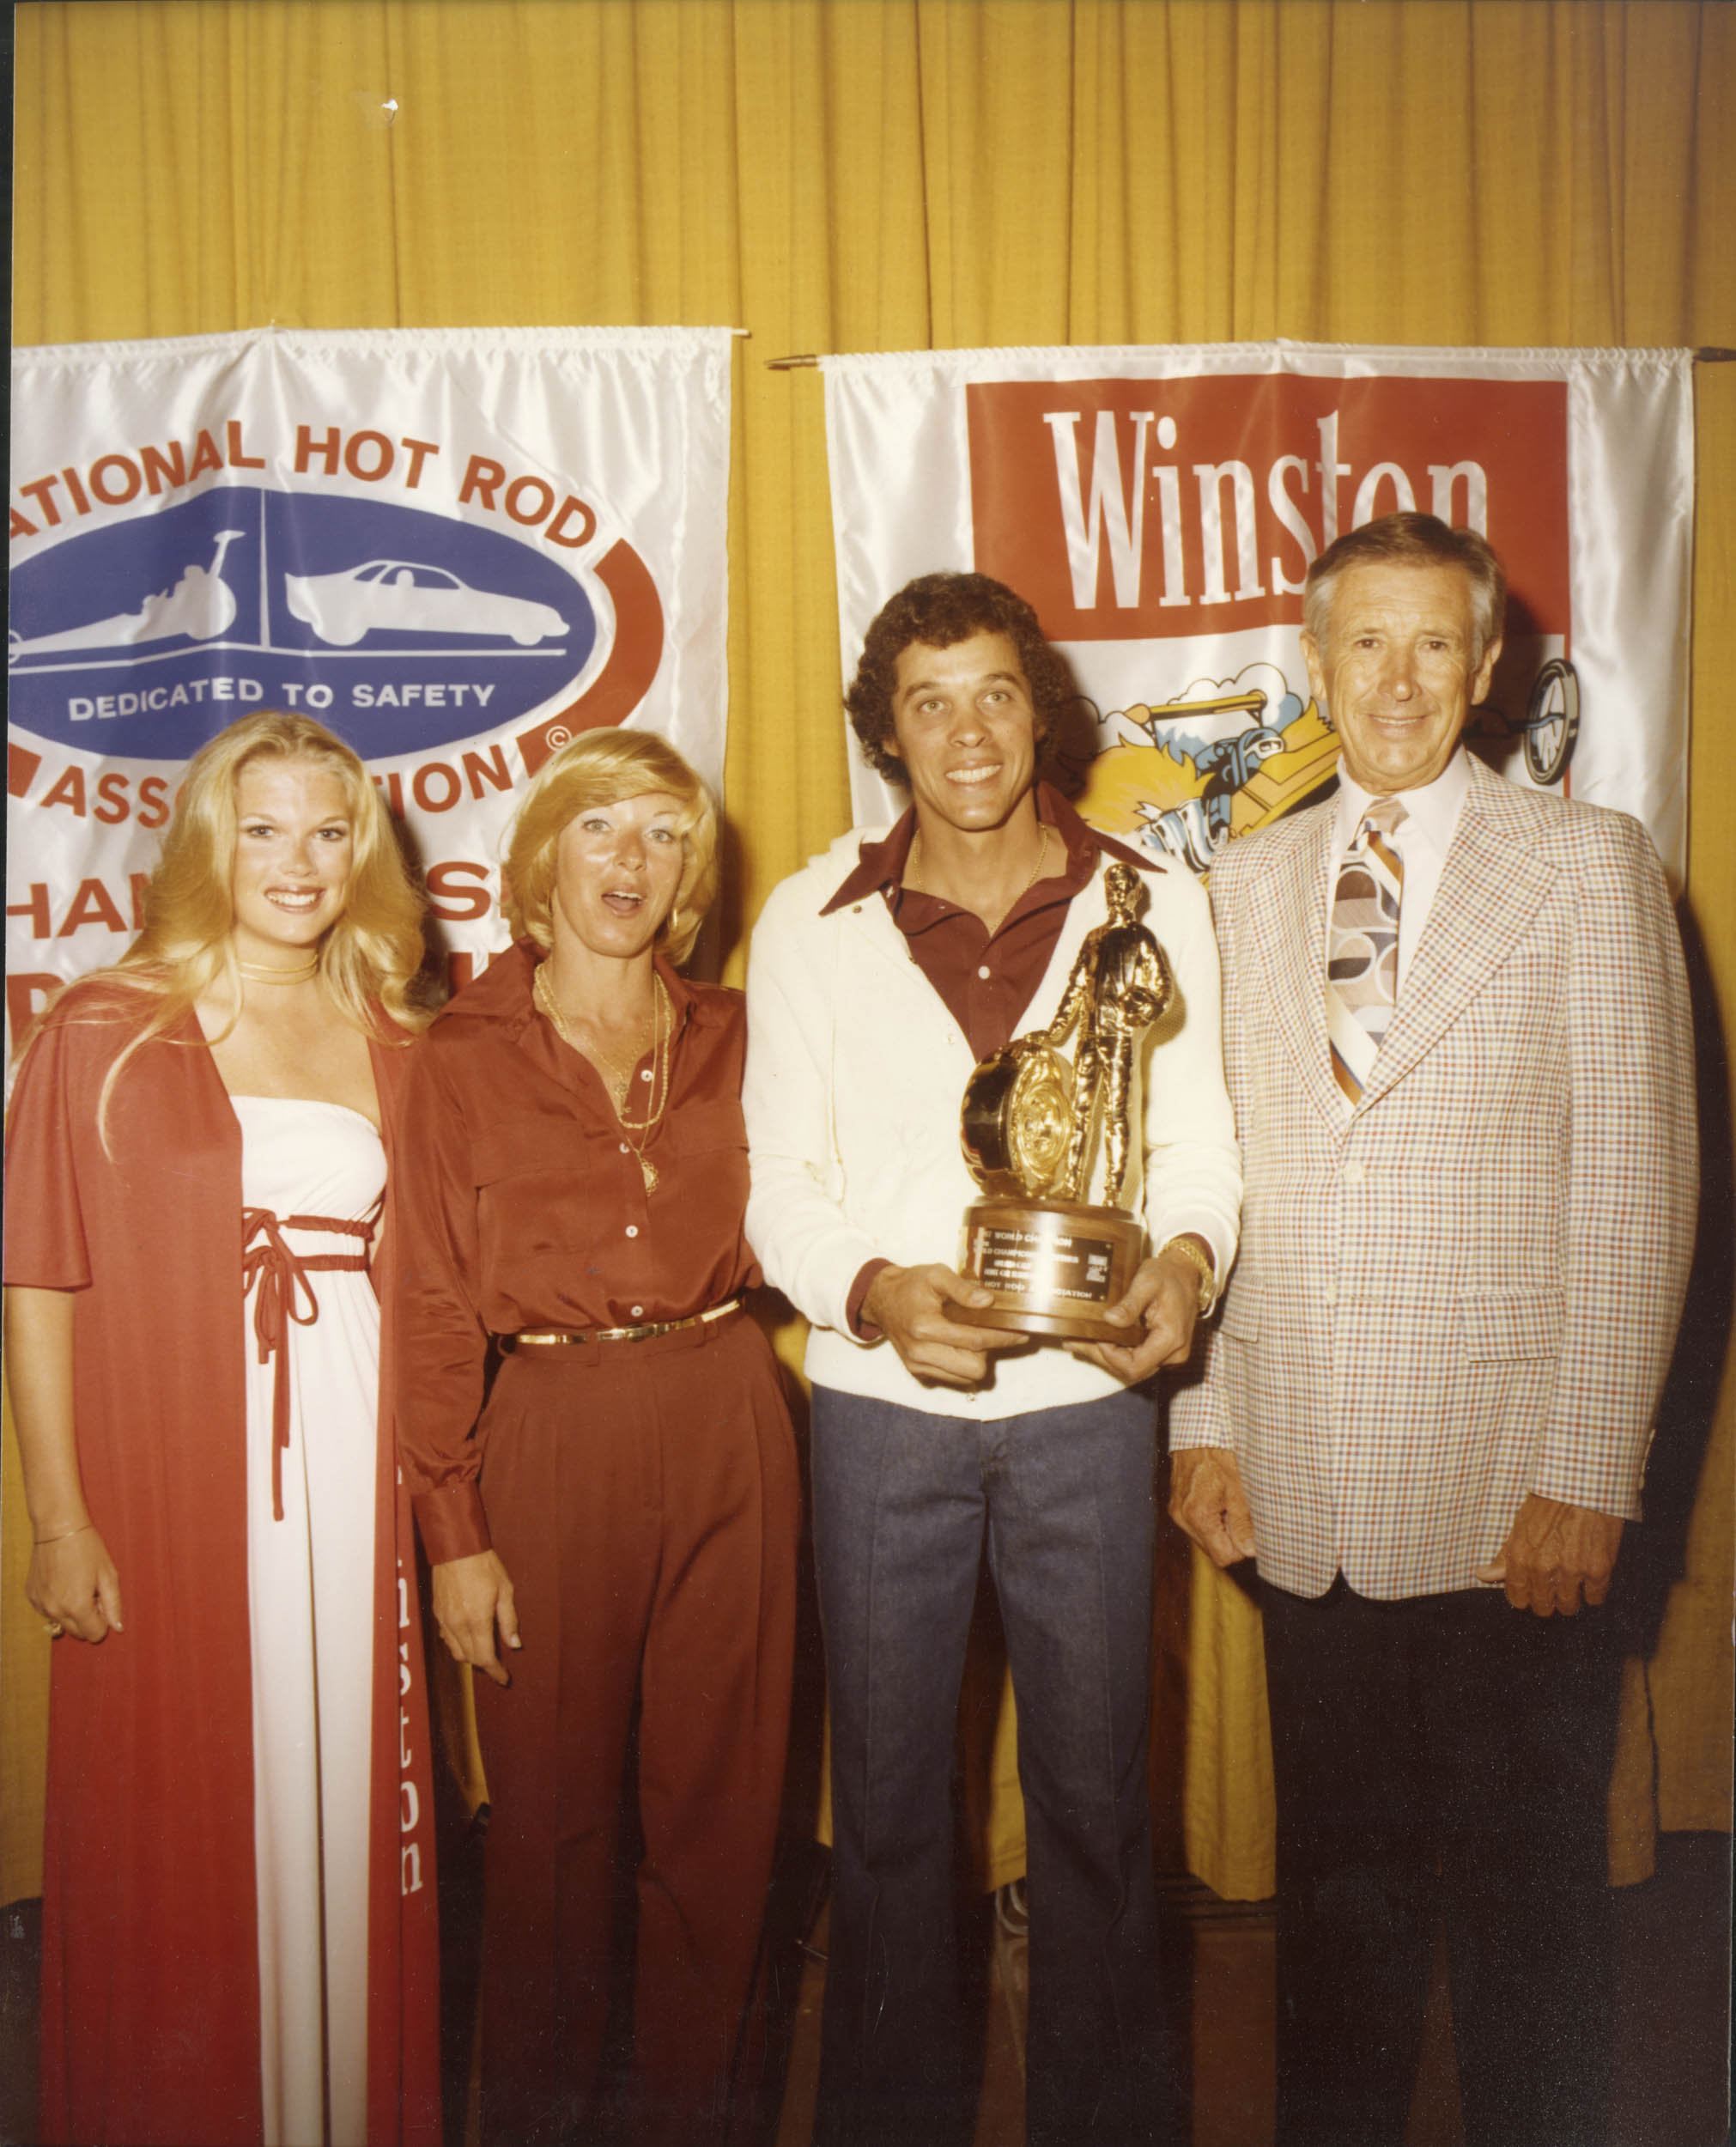 """Left to right, 1977: Miss Winston; Lynn and Don Prudhomme; NHRA founder Wally Parks. Between 1975 and '78 Prudhomme won four consecutive championships. """"I couldn't have done this without my wife, Lynn,"""" he says. """"She had the brains and I had the balls."""""""